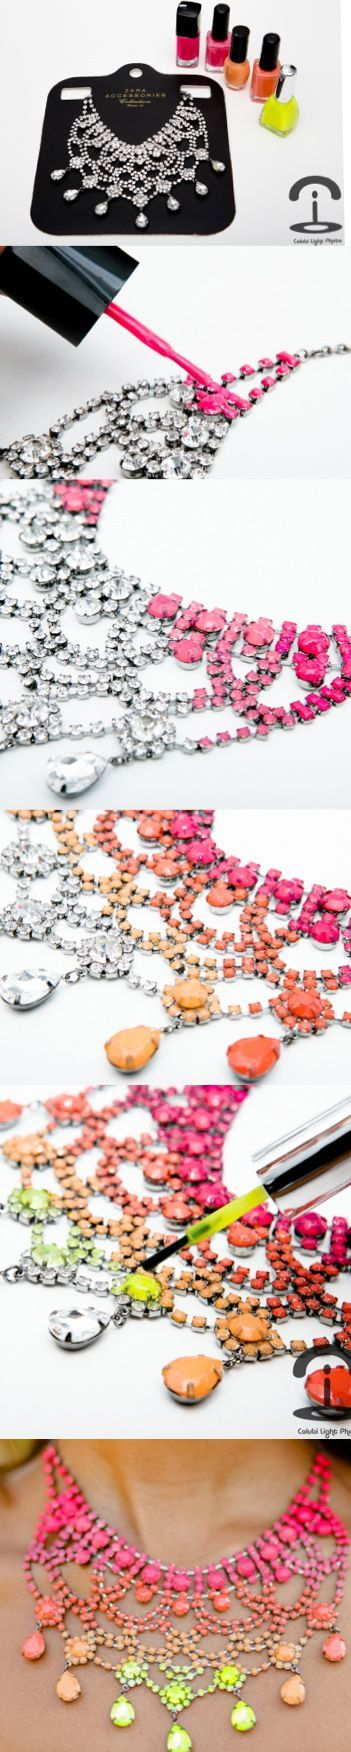 DIY Necklace.  Cool project.  Take an old gaudy necklace from a flea market, goodwill, yard sale, etc. and paint it with your favorite nail polish colors.  So cute.